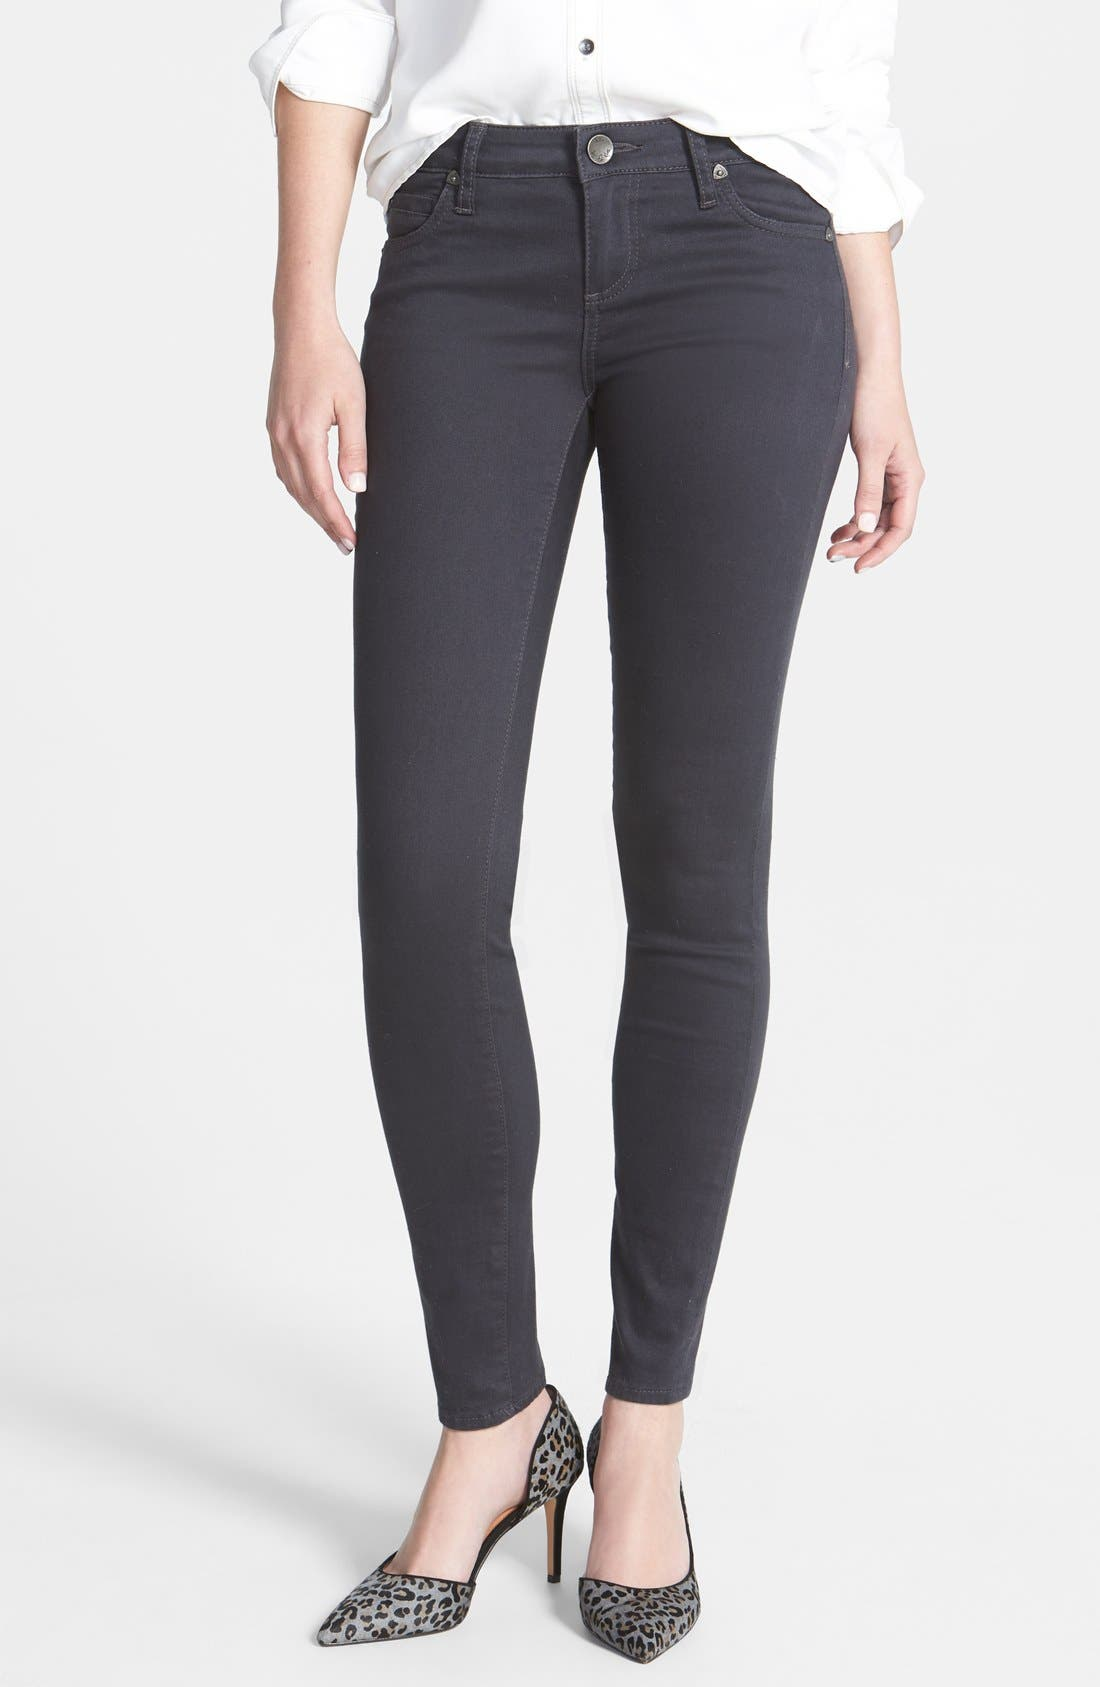 Alternate Image 1 Selected - KUT from the Kloth 'Mia' Stretch Skinny Jeans (Graceful)